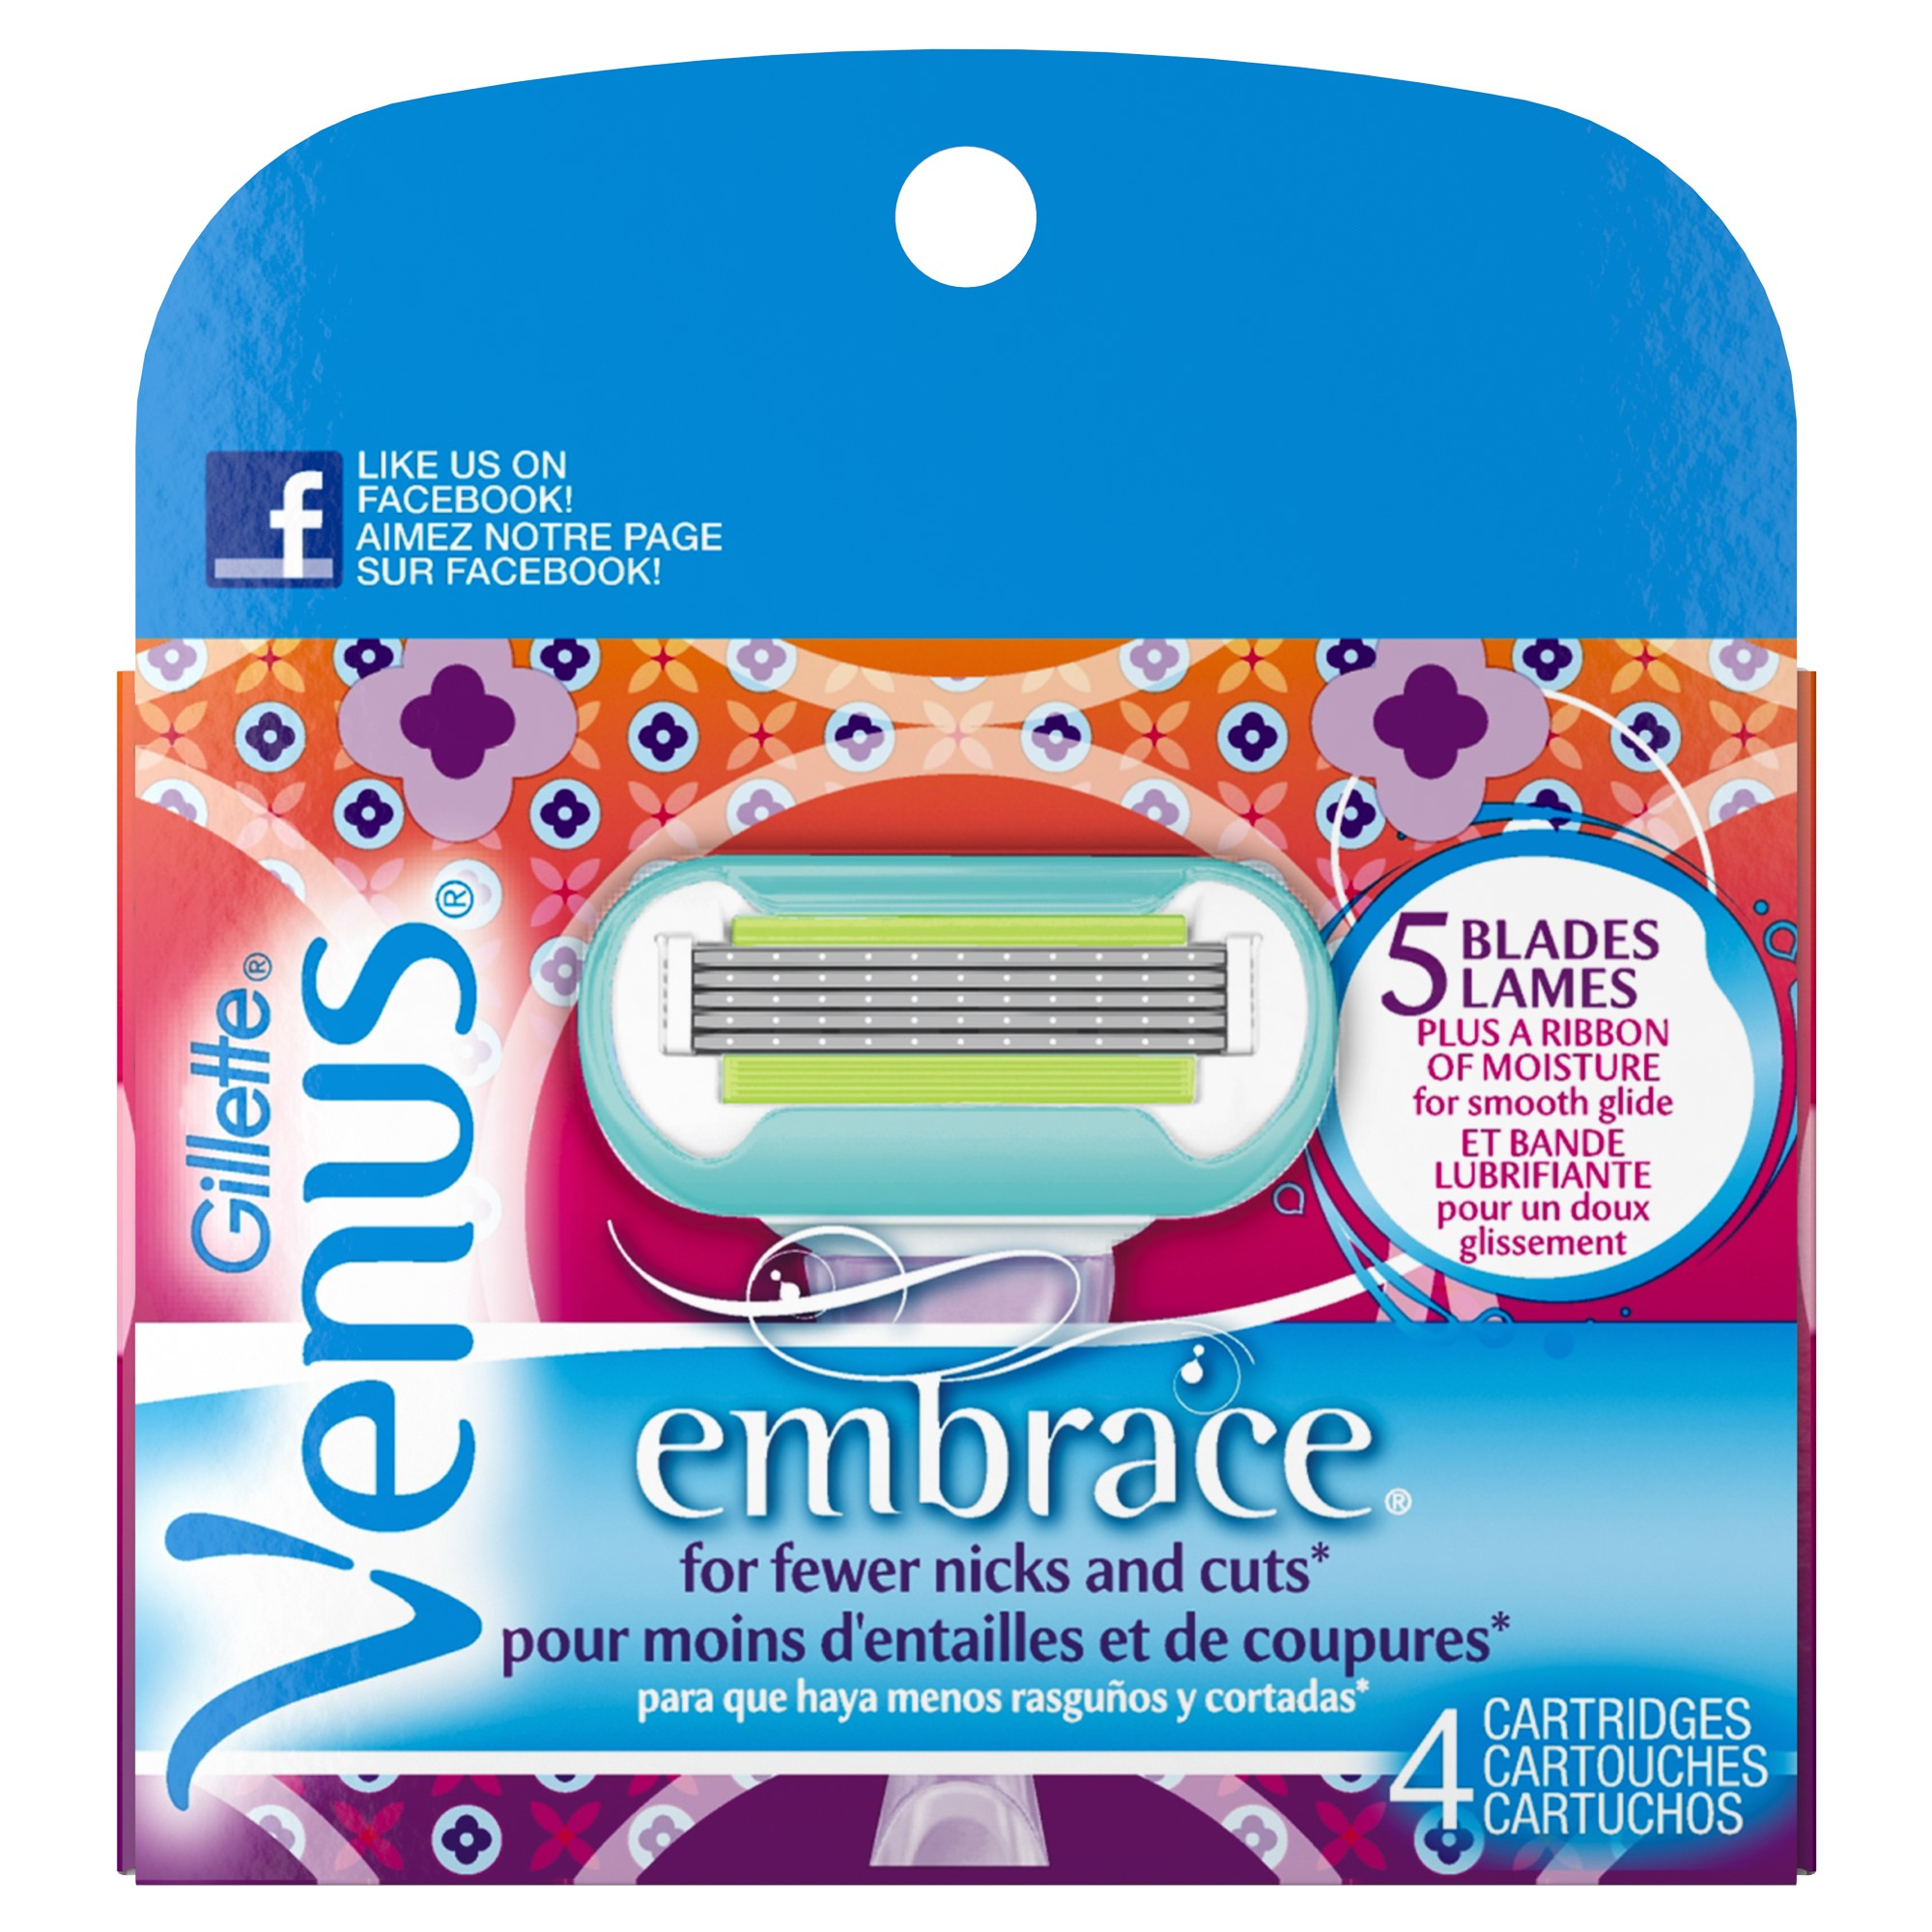 Gillette Venus Embrace Women's Razor Blade Refills, Purple, 4 Count